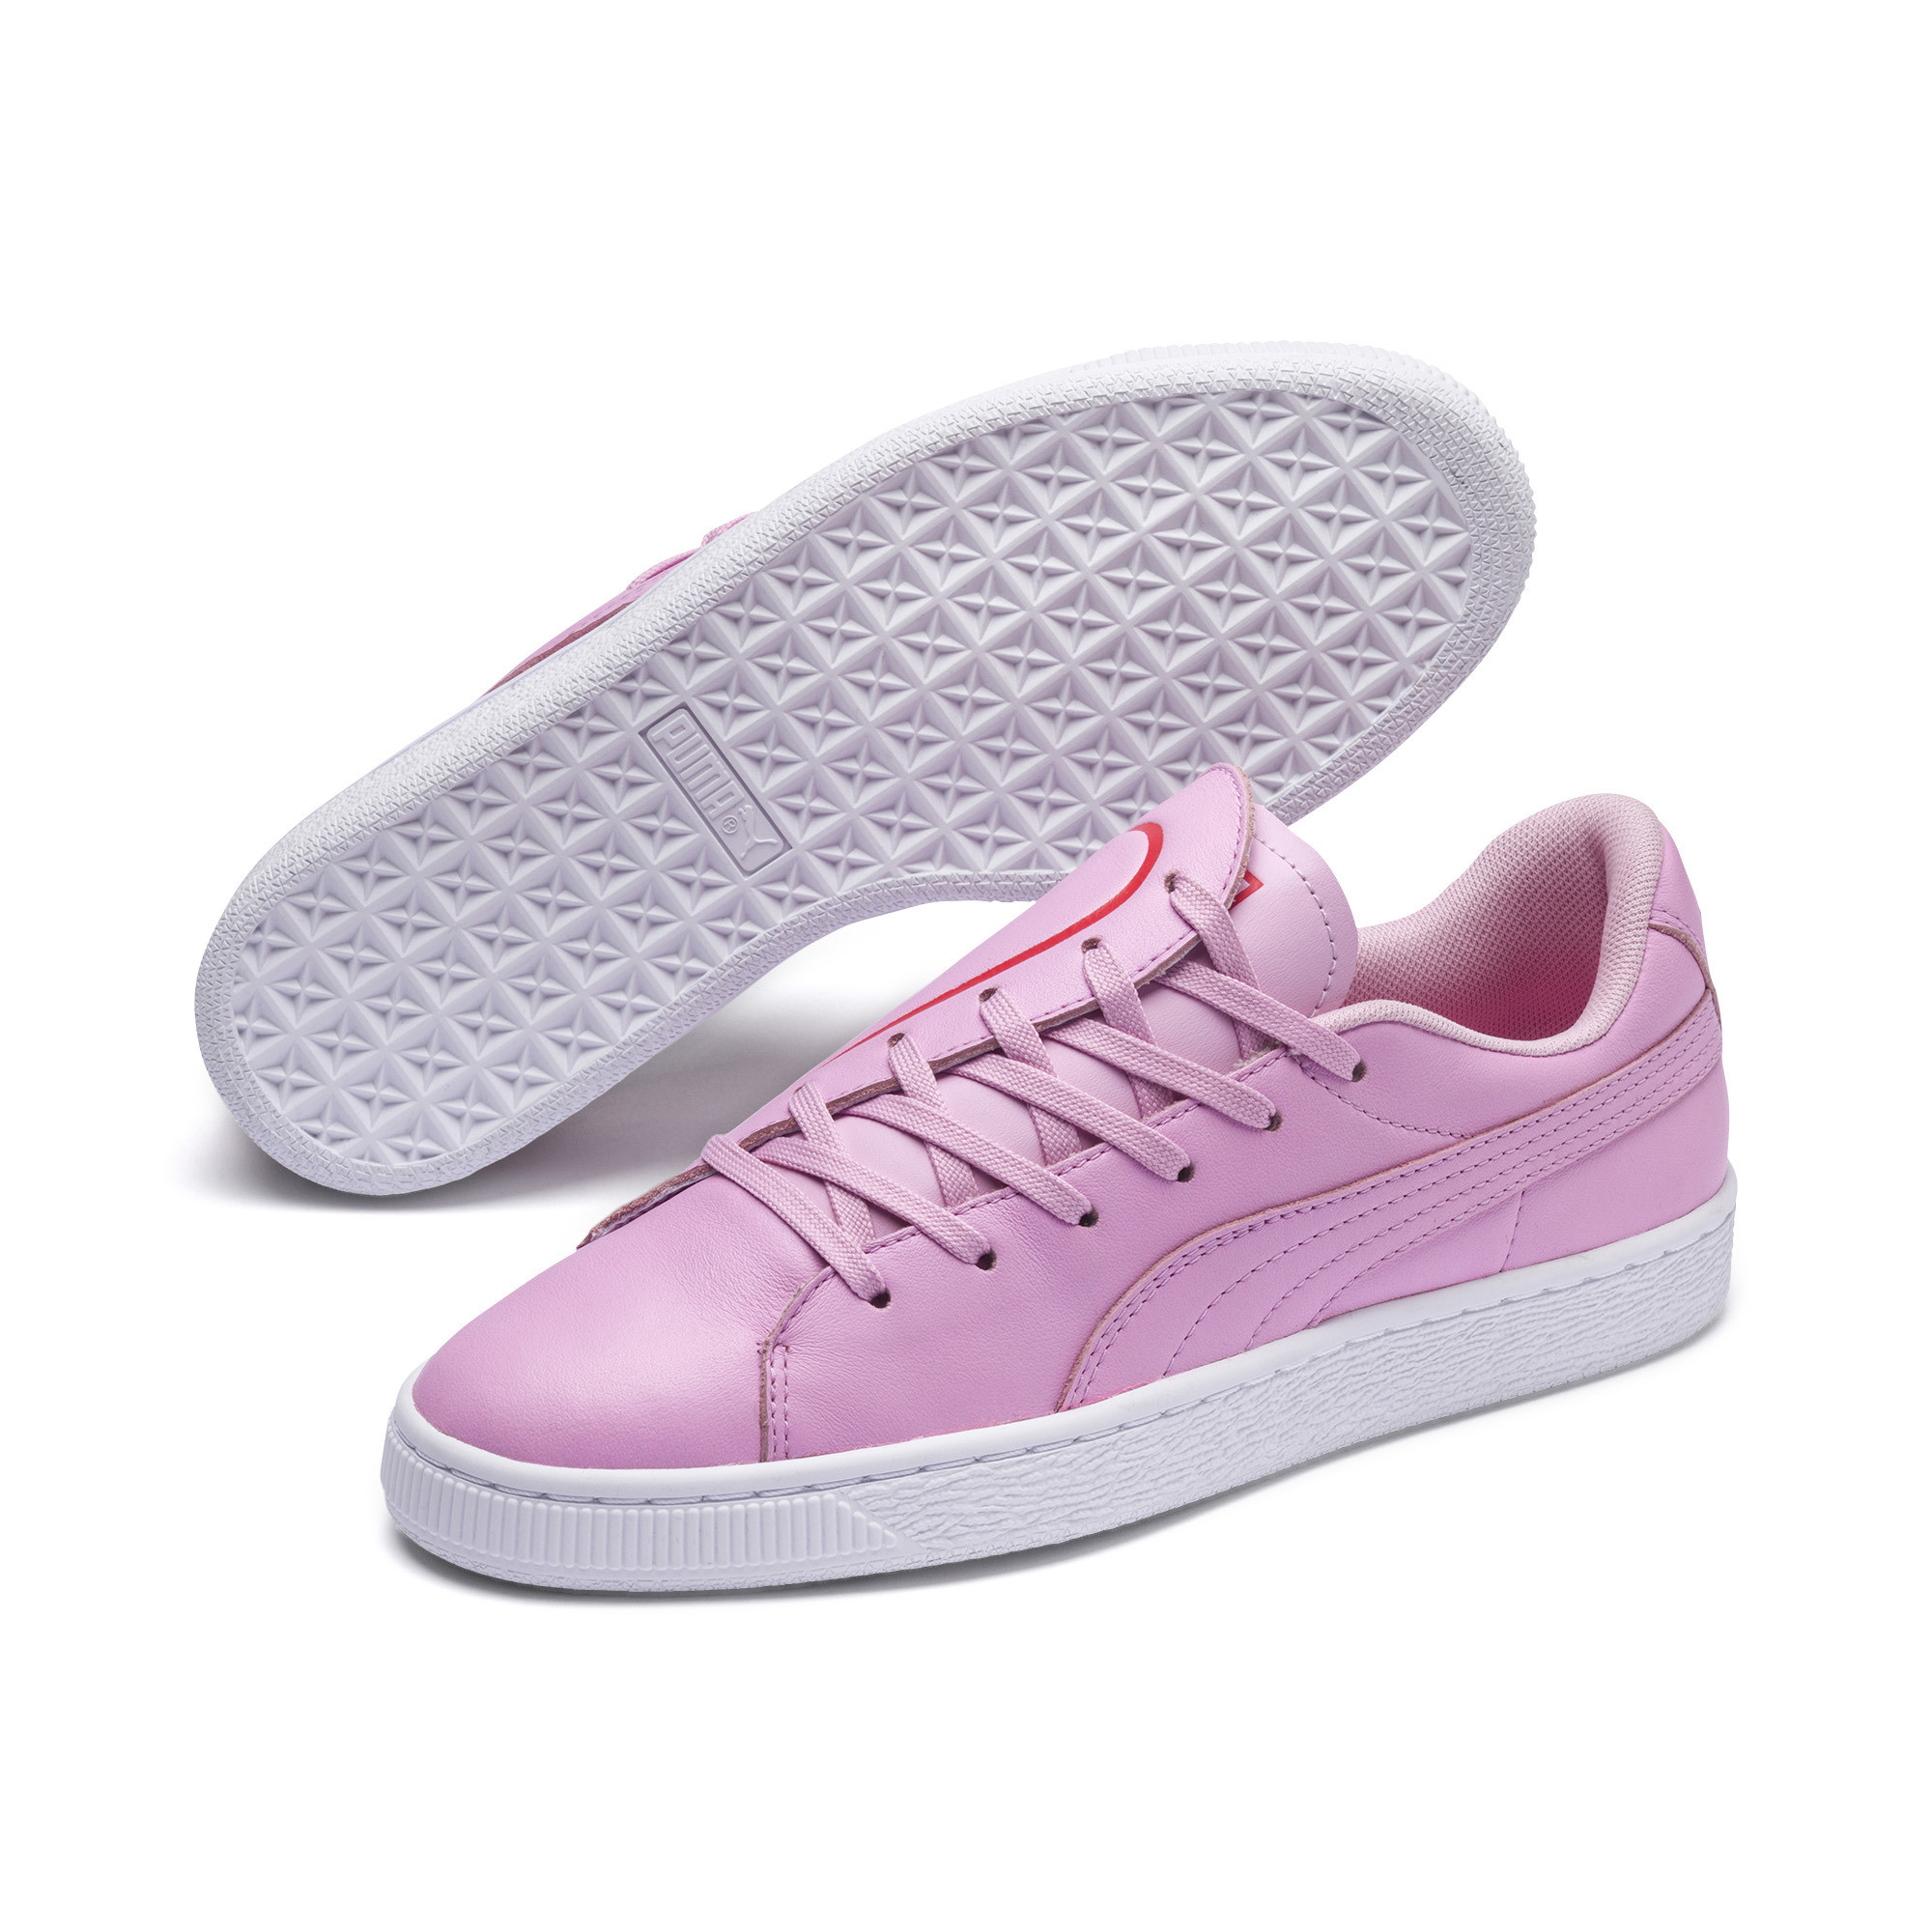 PUMA-Women-039-s-Basket-Crush-Emboss-Heart-Sneakers thumbnail 15